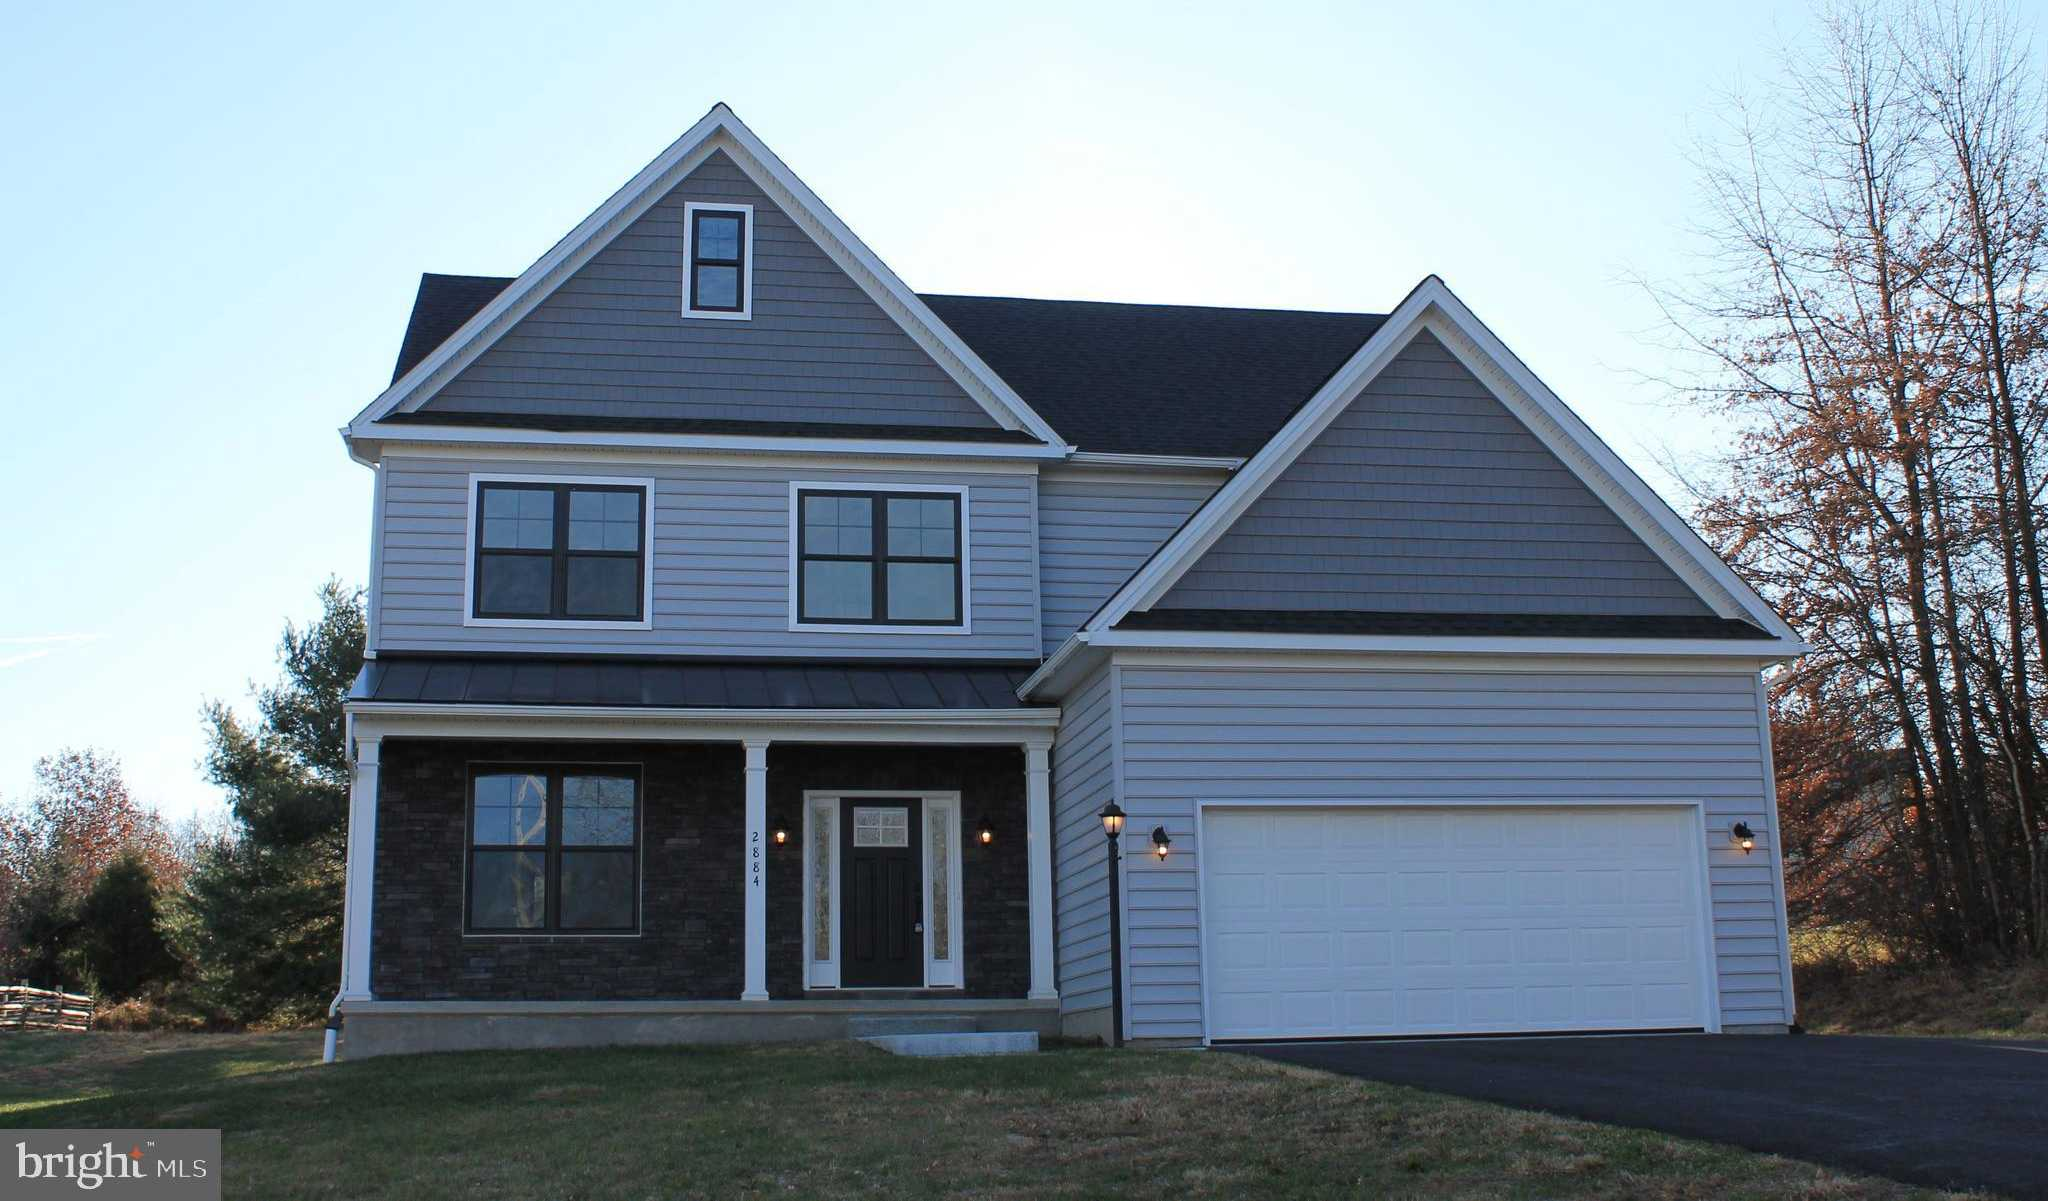 $485,900 - 4Br/4Ba -  for Sale in None Available, Barto